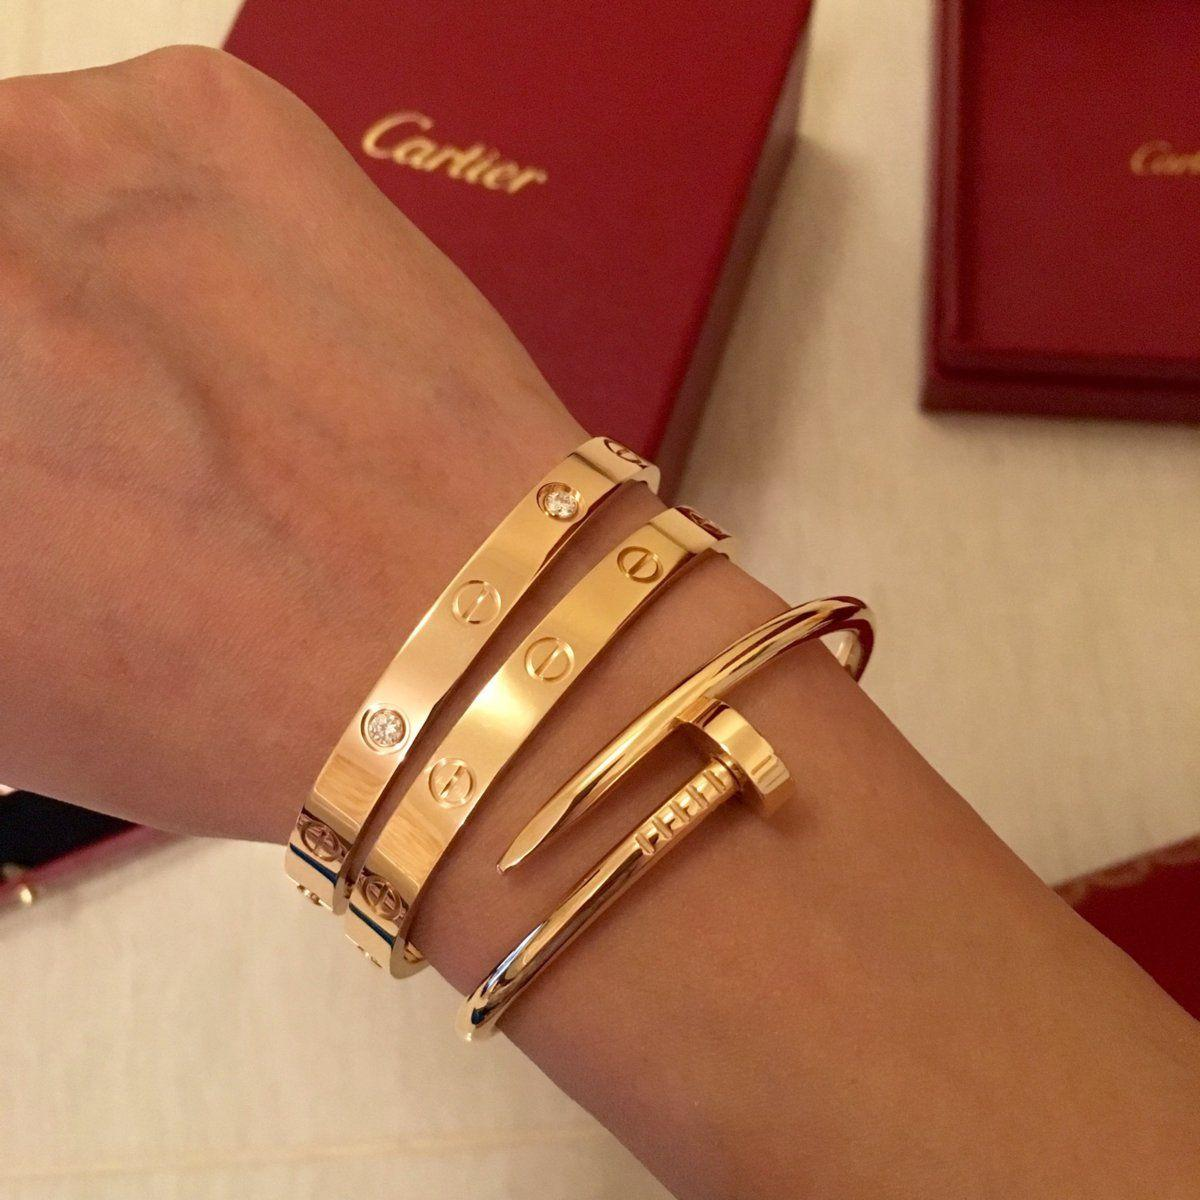 Cartier 18K Yellow Gold Love Bracelet Bangle Shop Cartier Love Bracelets cheap  13